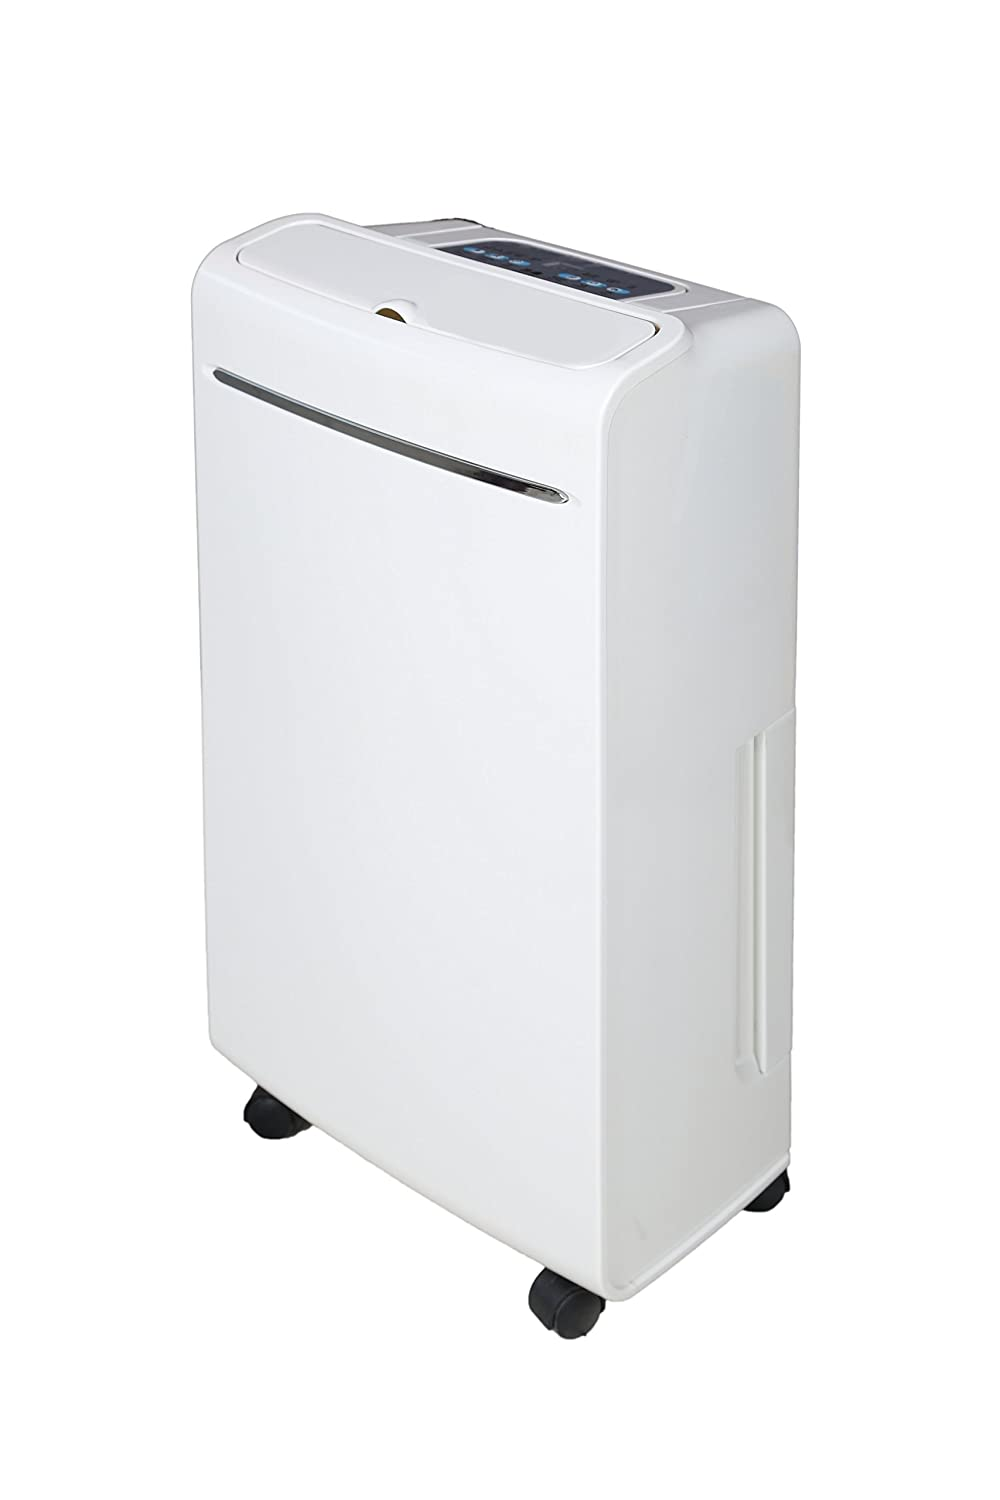 Dehumidifier that will remove 12 litres of moisture per day. Its suitable for a large room and house. Its quiet, robust and very reliable. Smells ,Moulds and infections eliminated. 3 Year GUARANTEE. sean burke